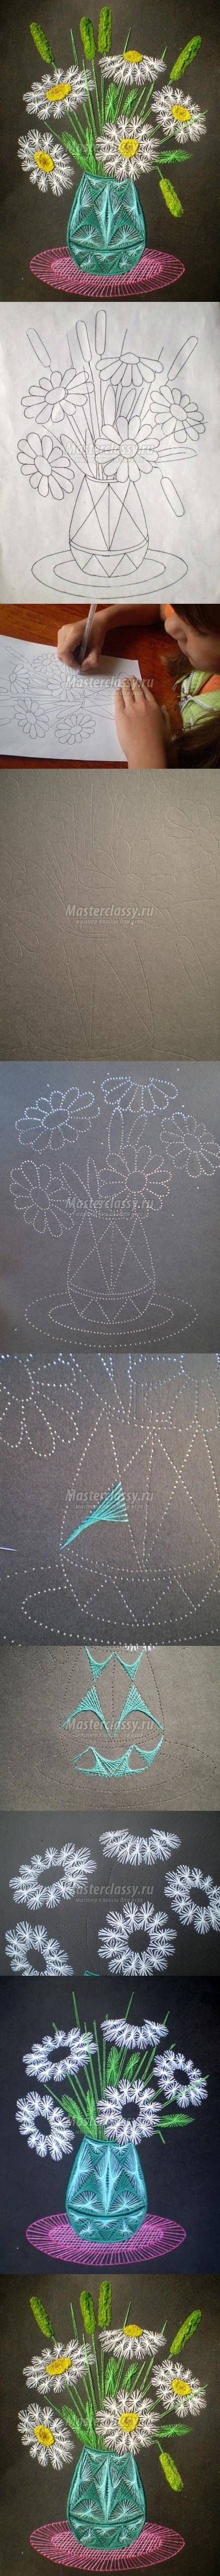 DIY broderie sur carte                                                                                                                                                                                 Plus